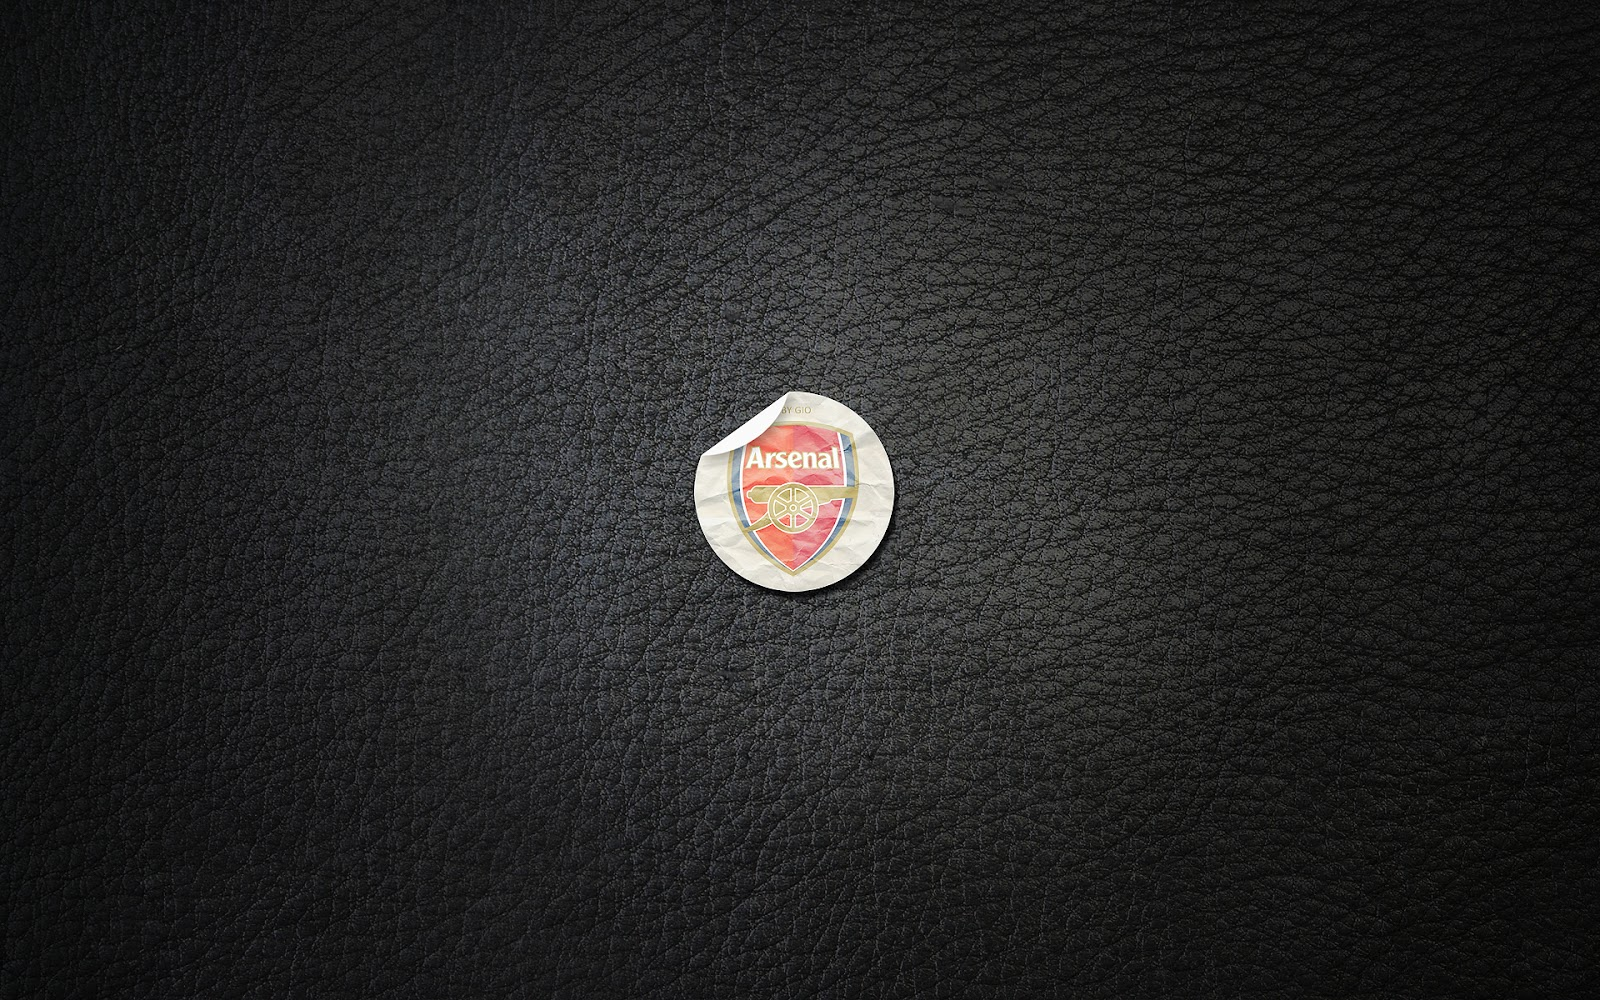 Great   Wallpaper Horse Ipod Touch - Arsenal%2BWallpaper%2B04  Collection_597762.jpg